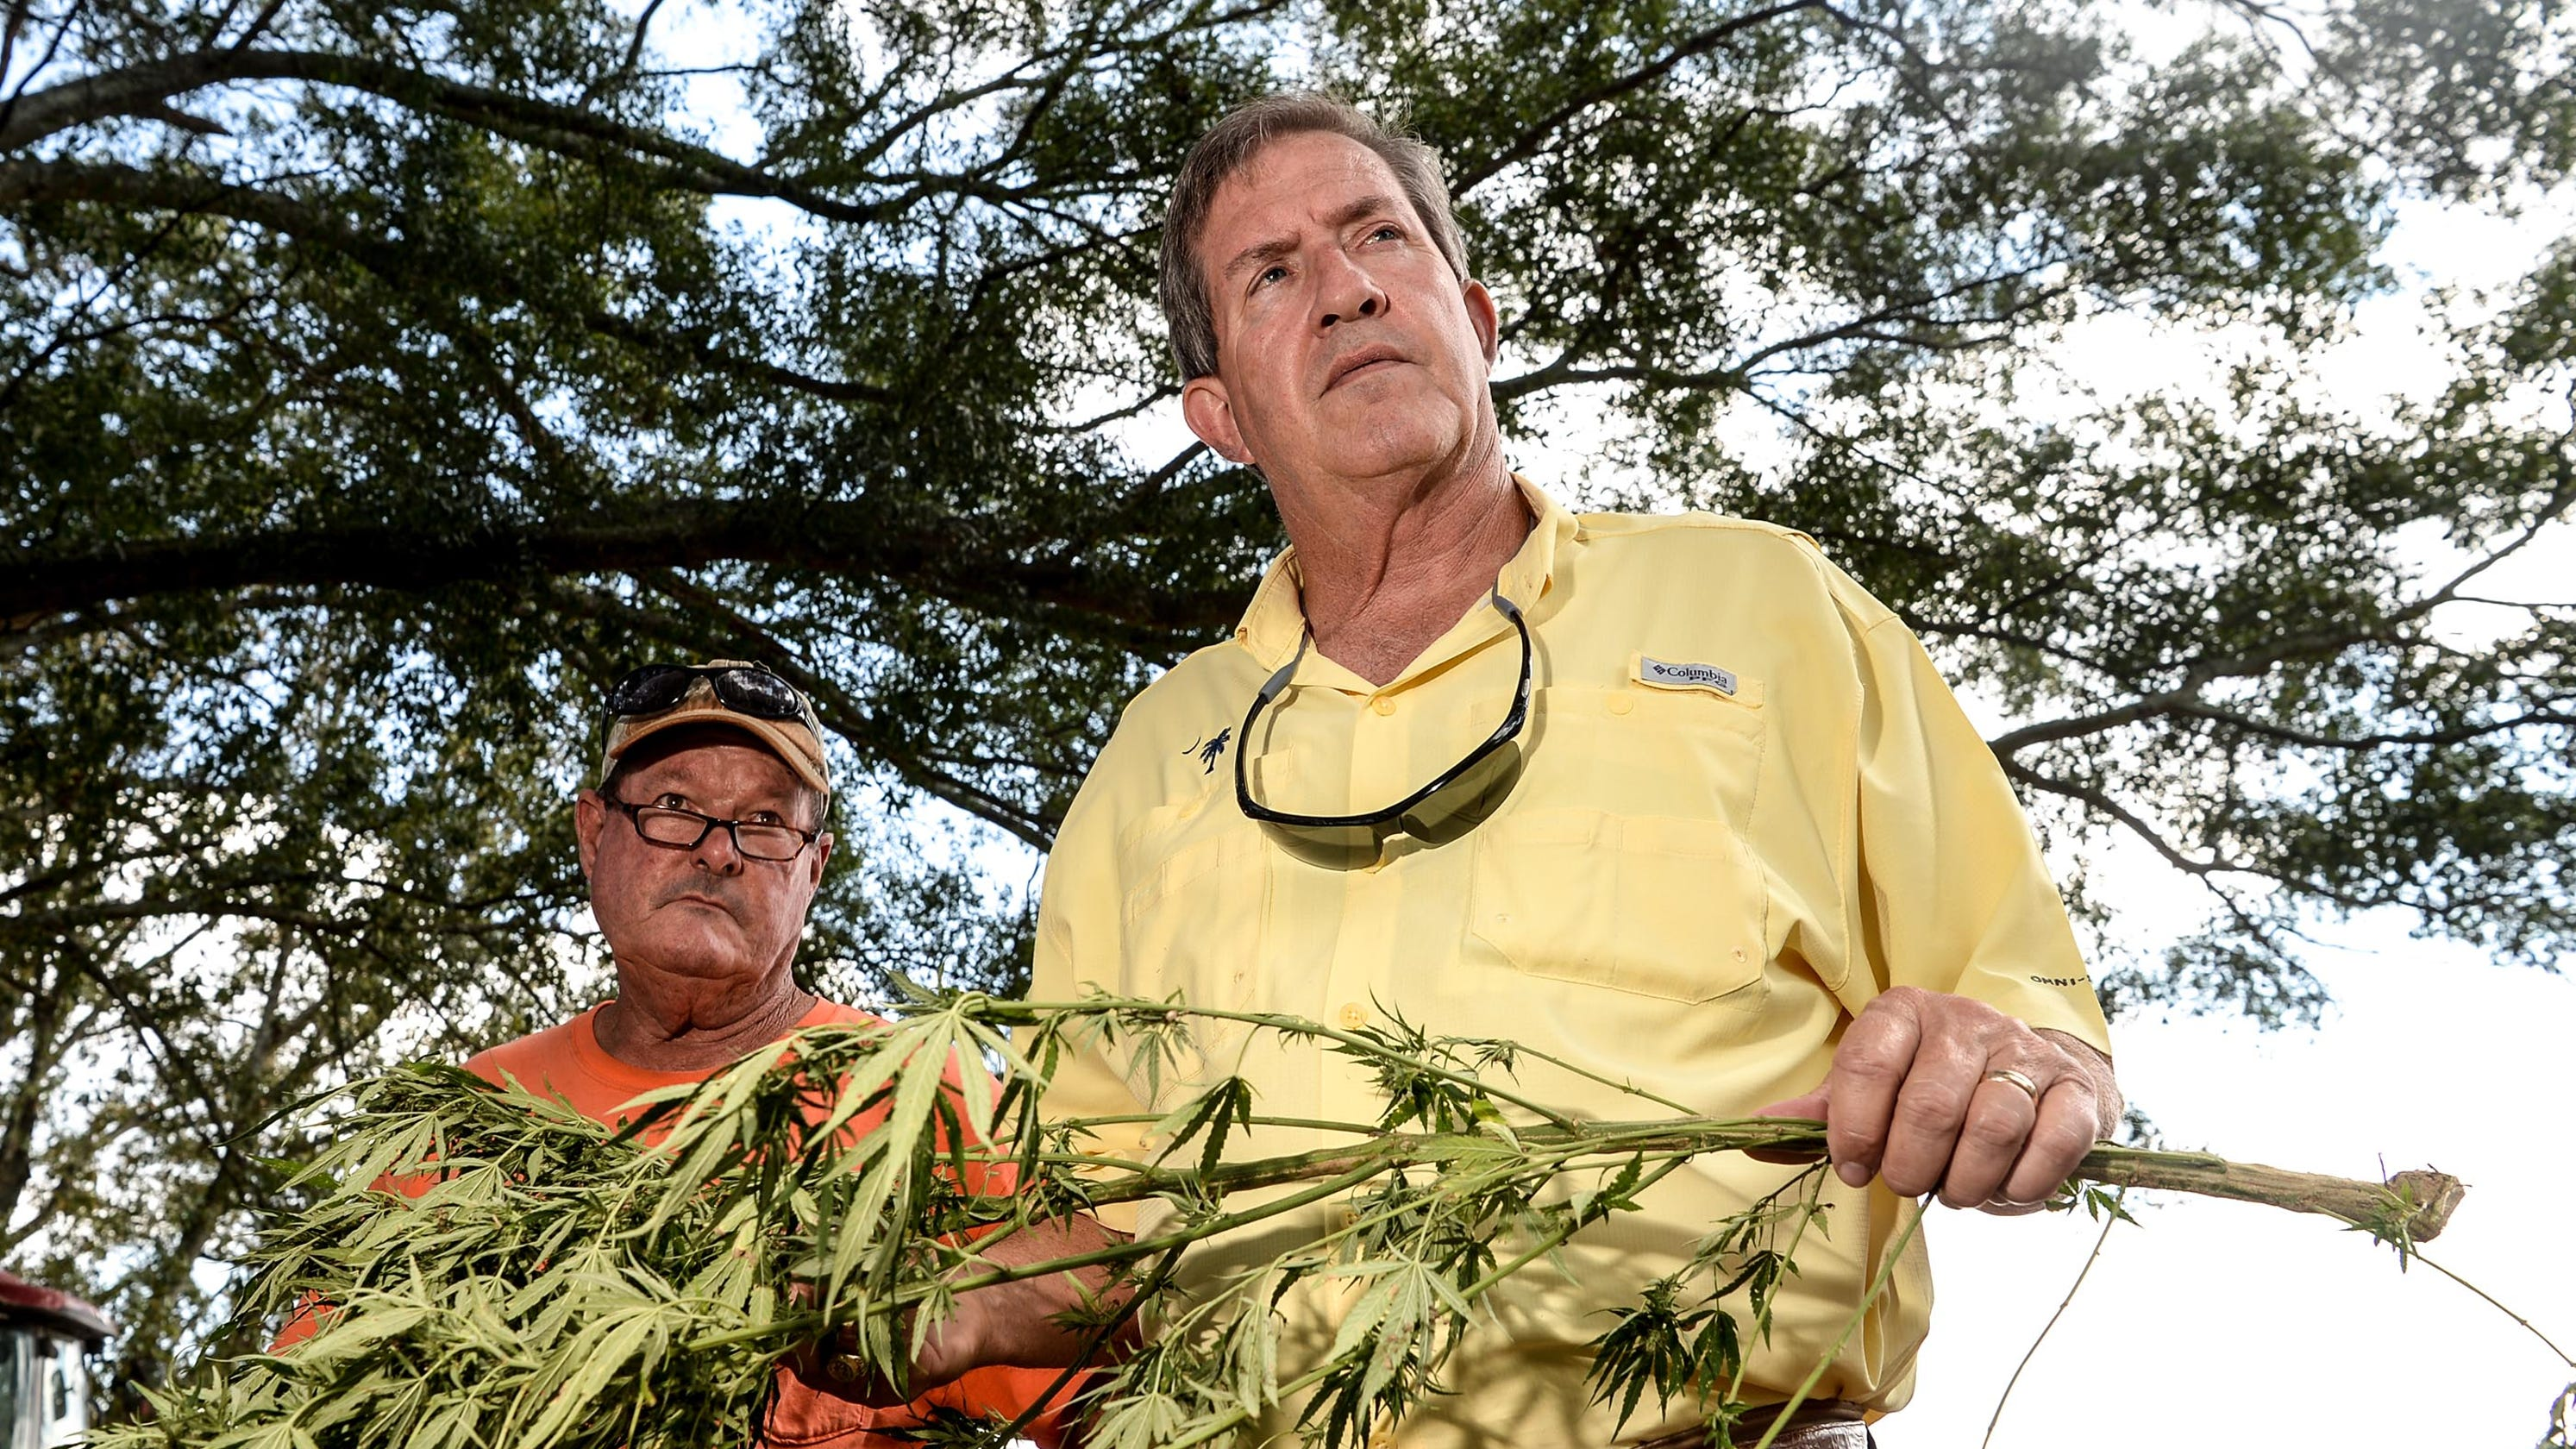 Upstate catches hemp fever, but this $1B industry is not